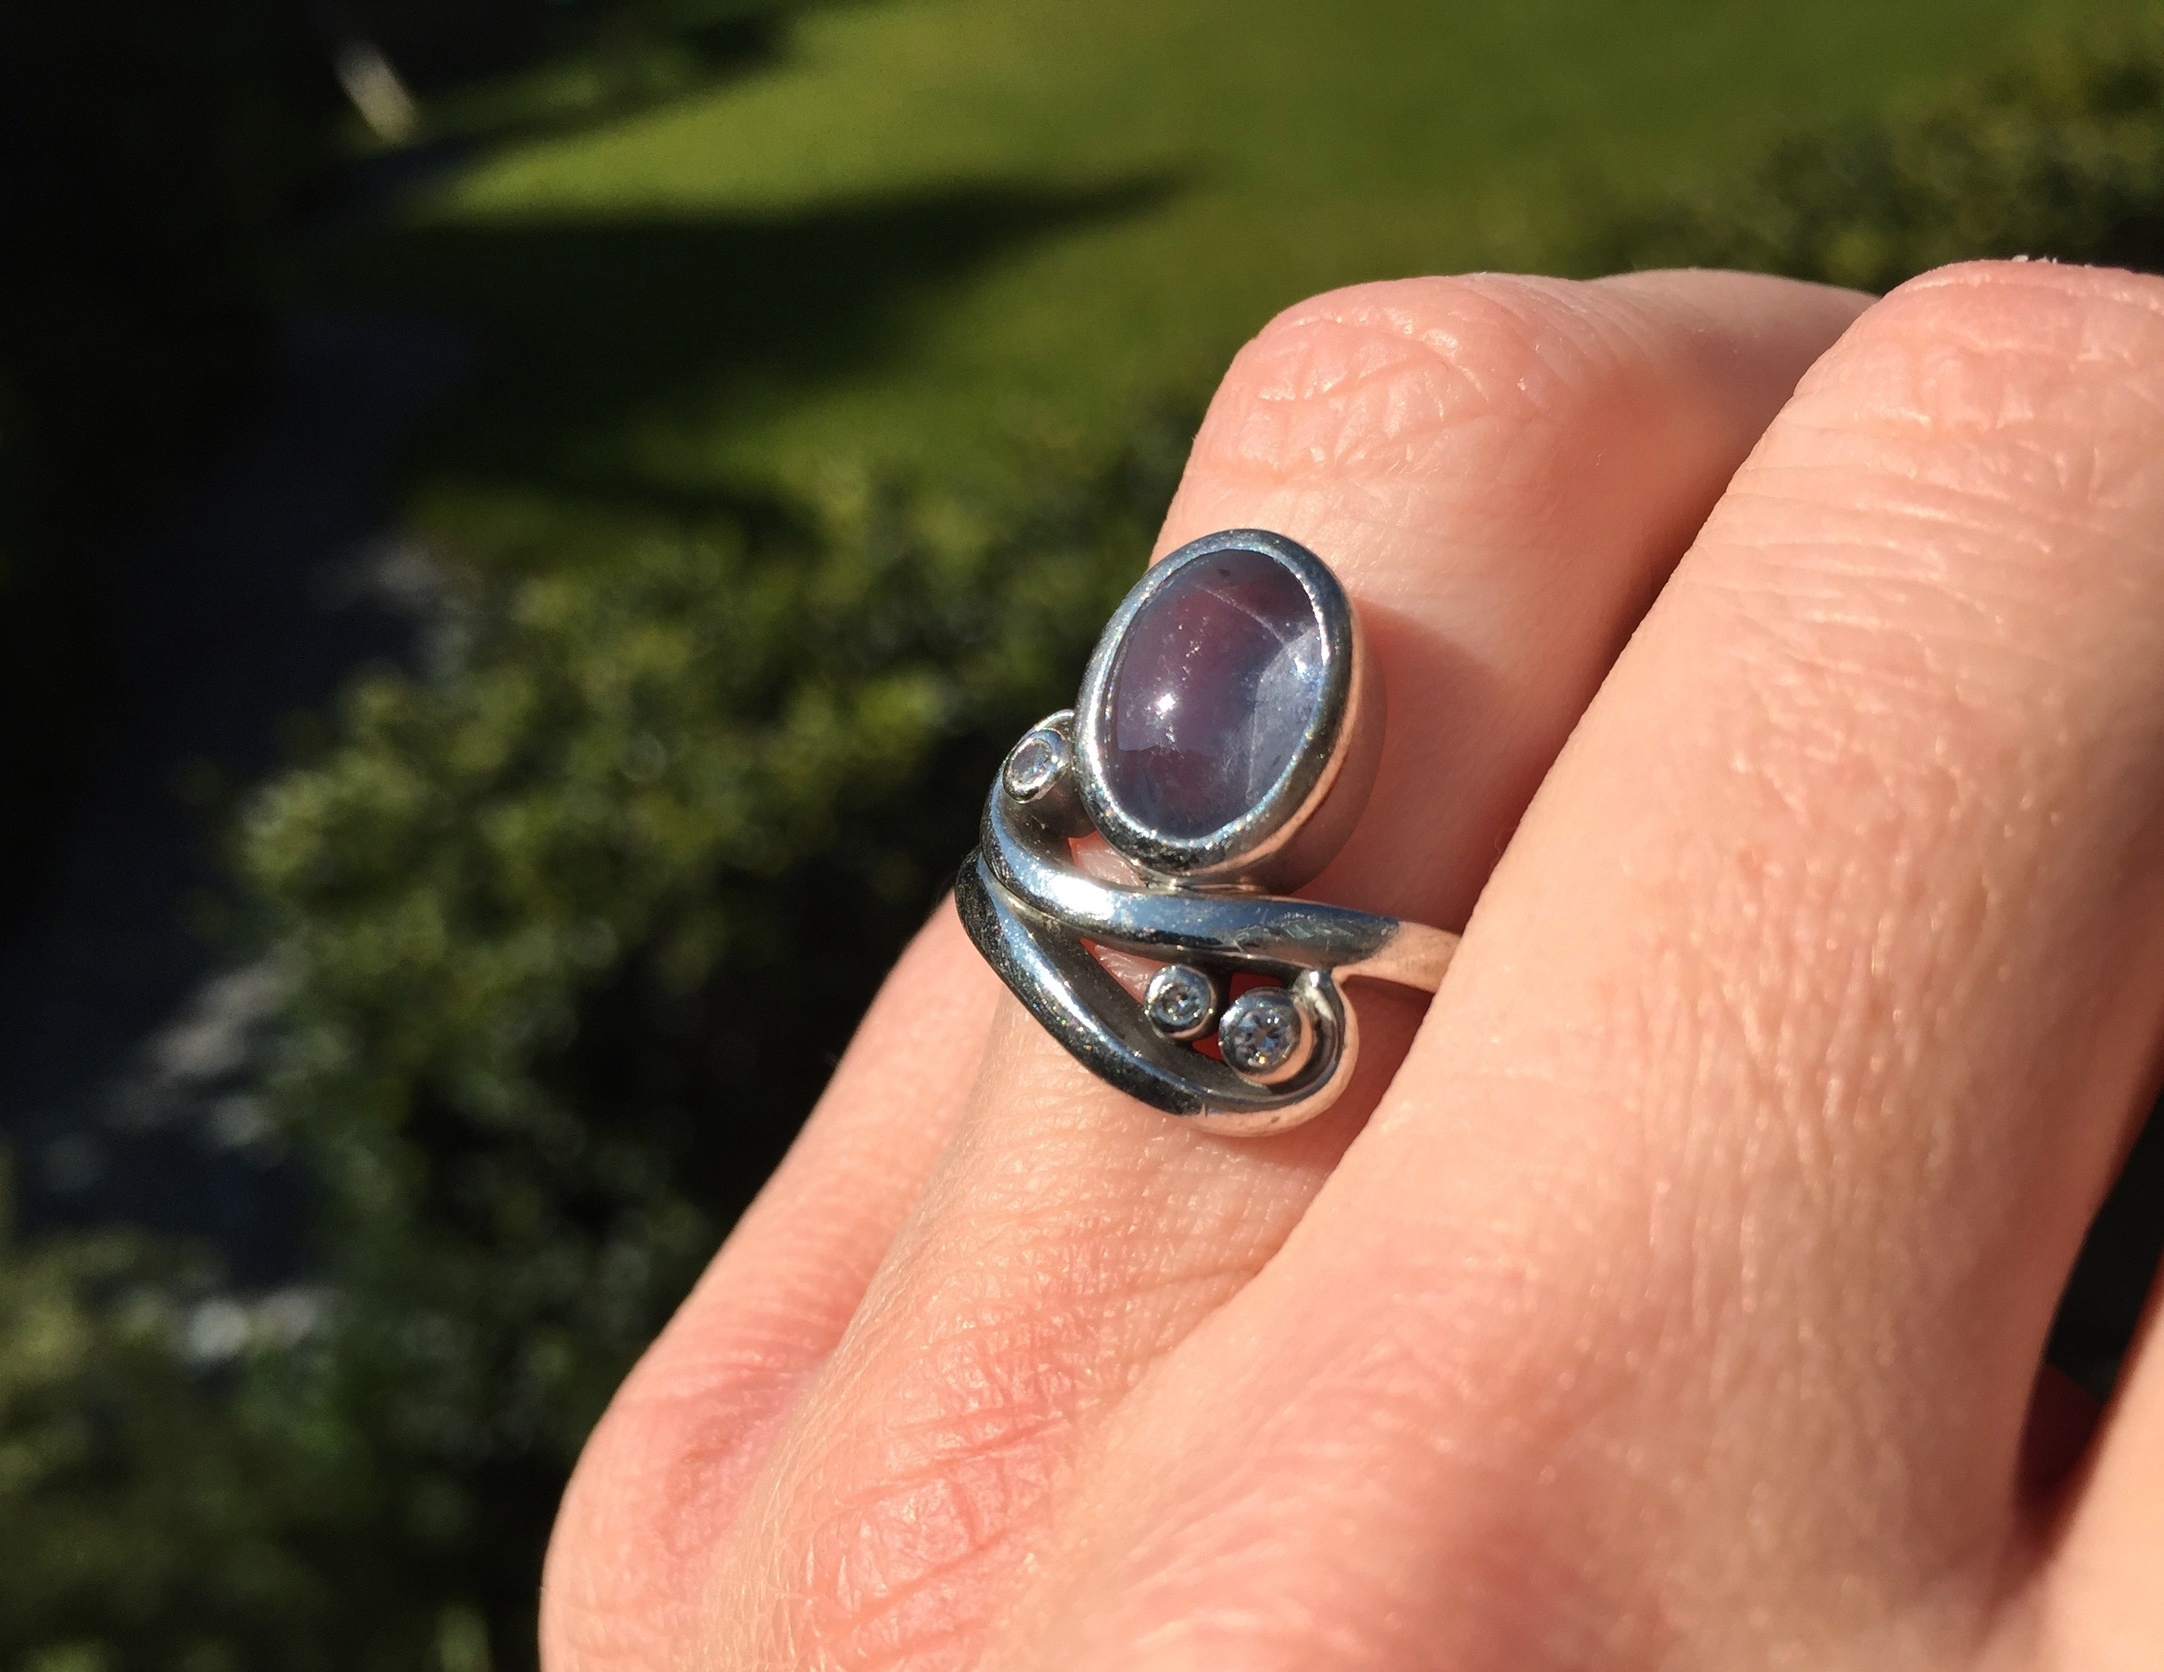 My very special engagement/wedding ring.